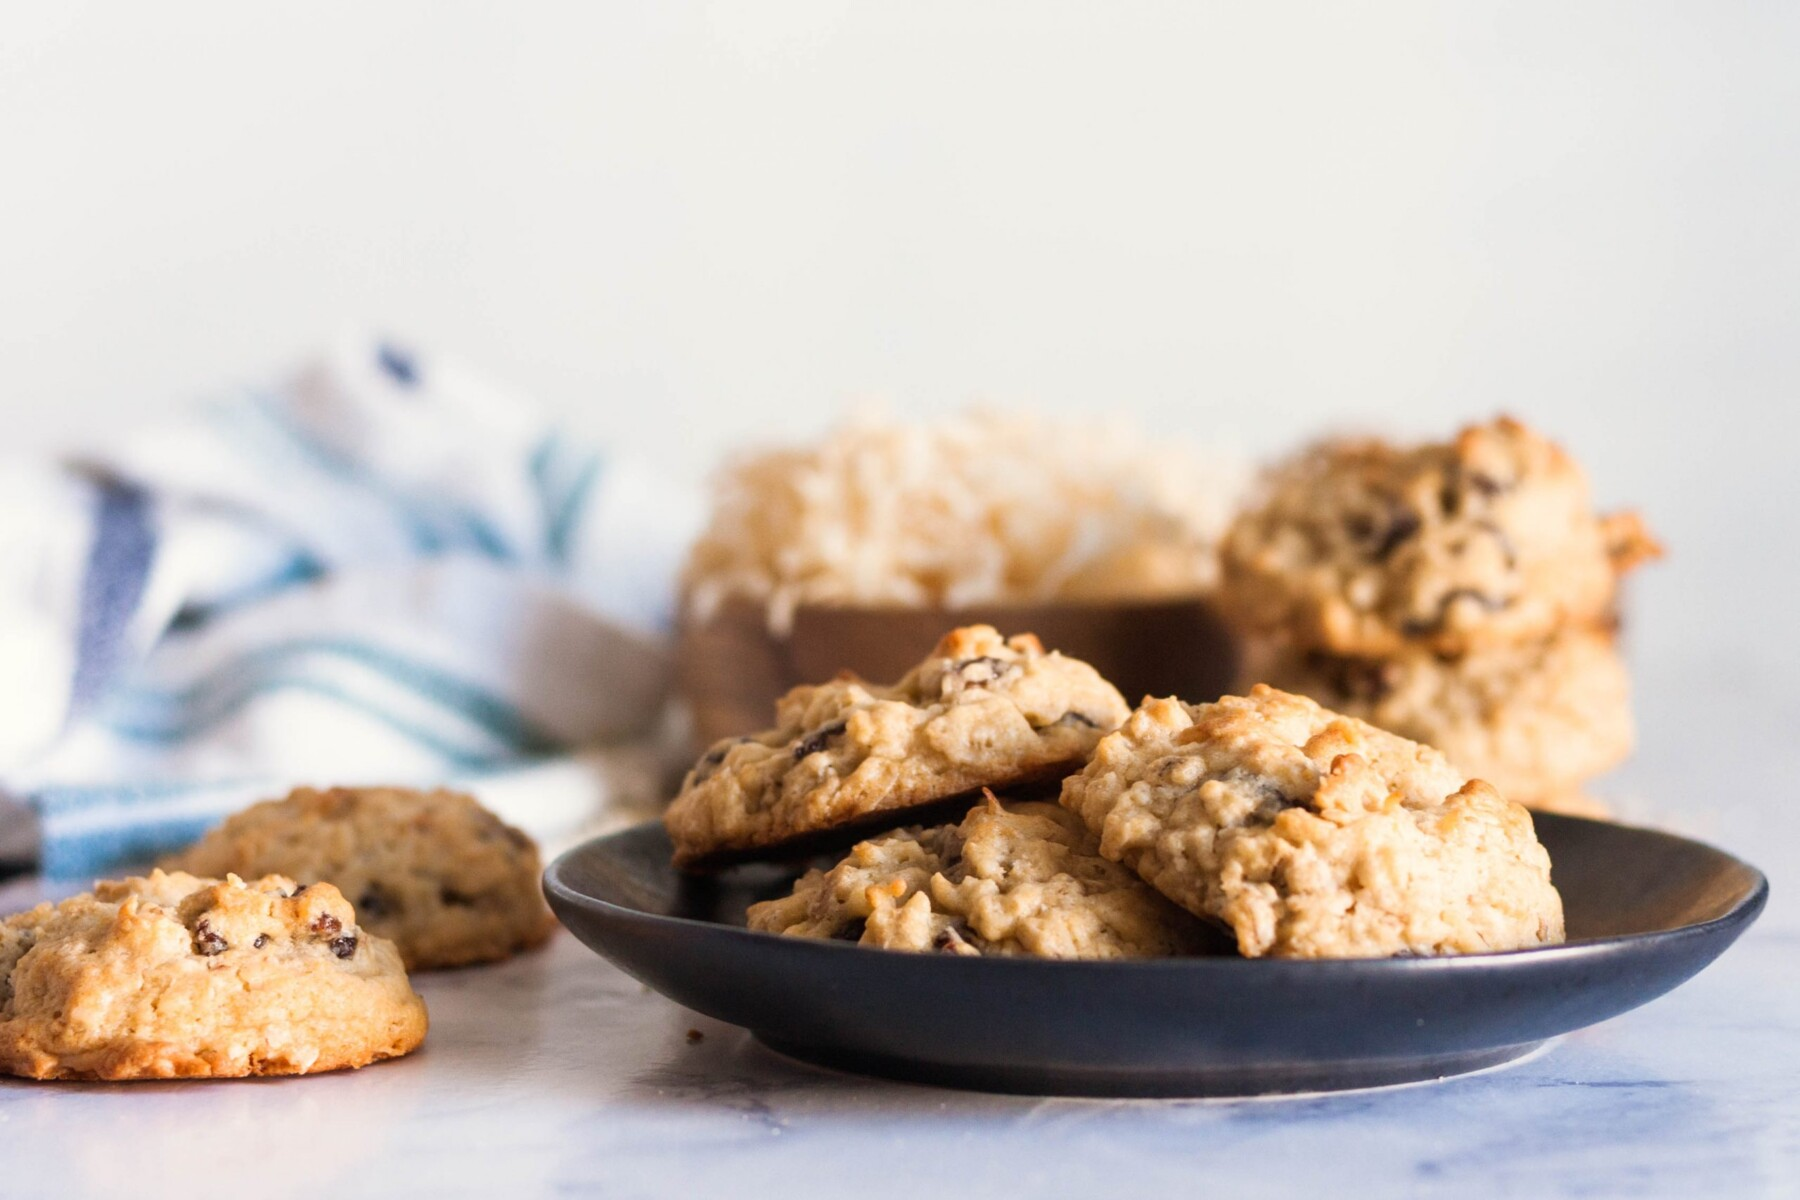 coconut oatmeal cookies on a black plate with a bowl of shredded coconut and a white and blue napkin in the background